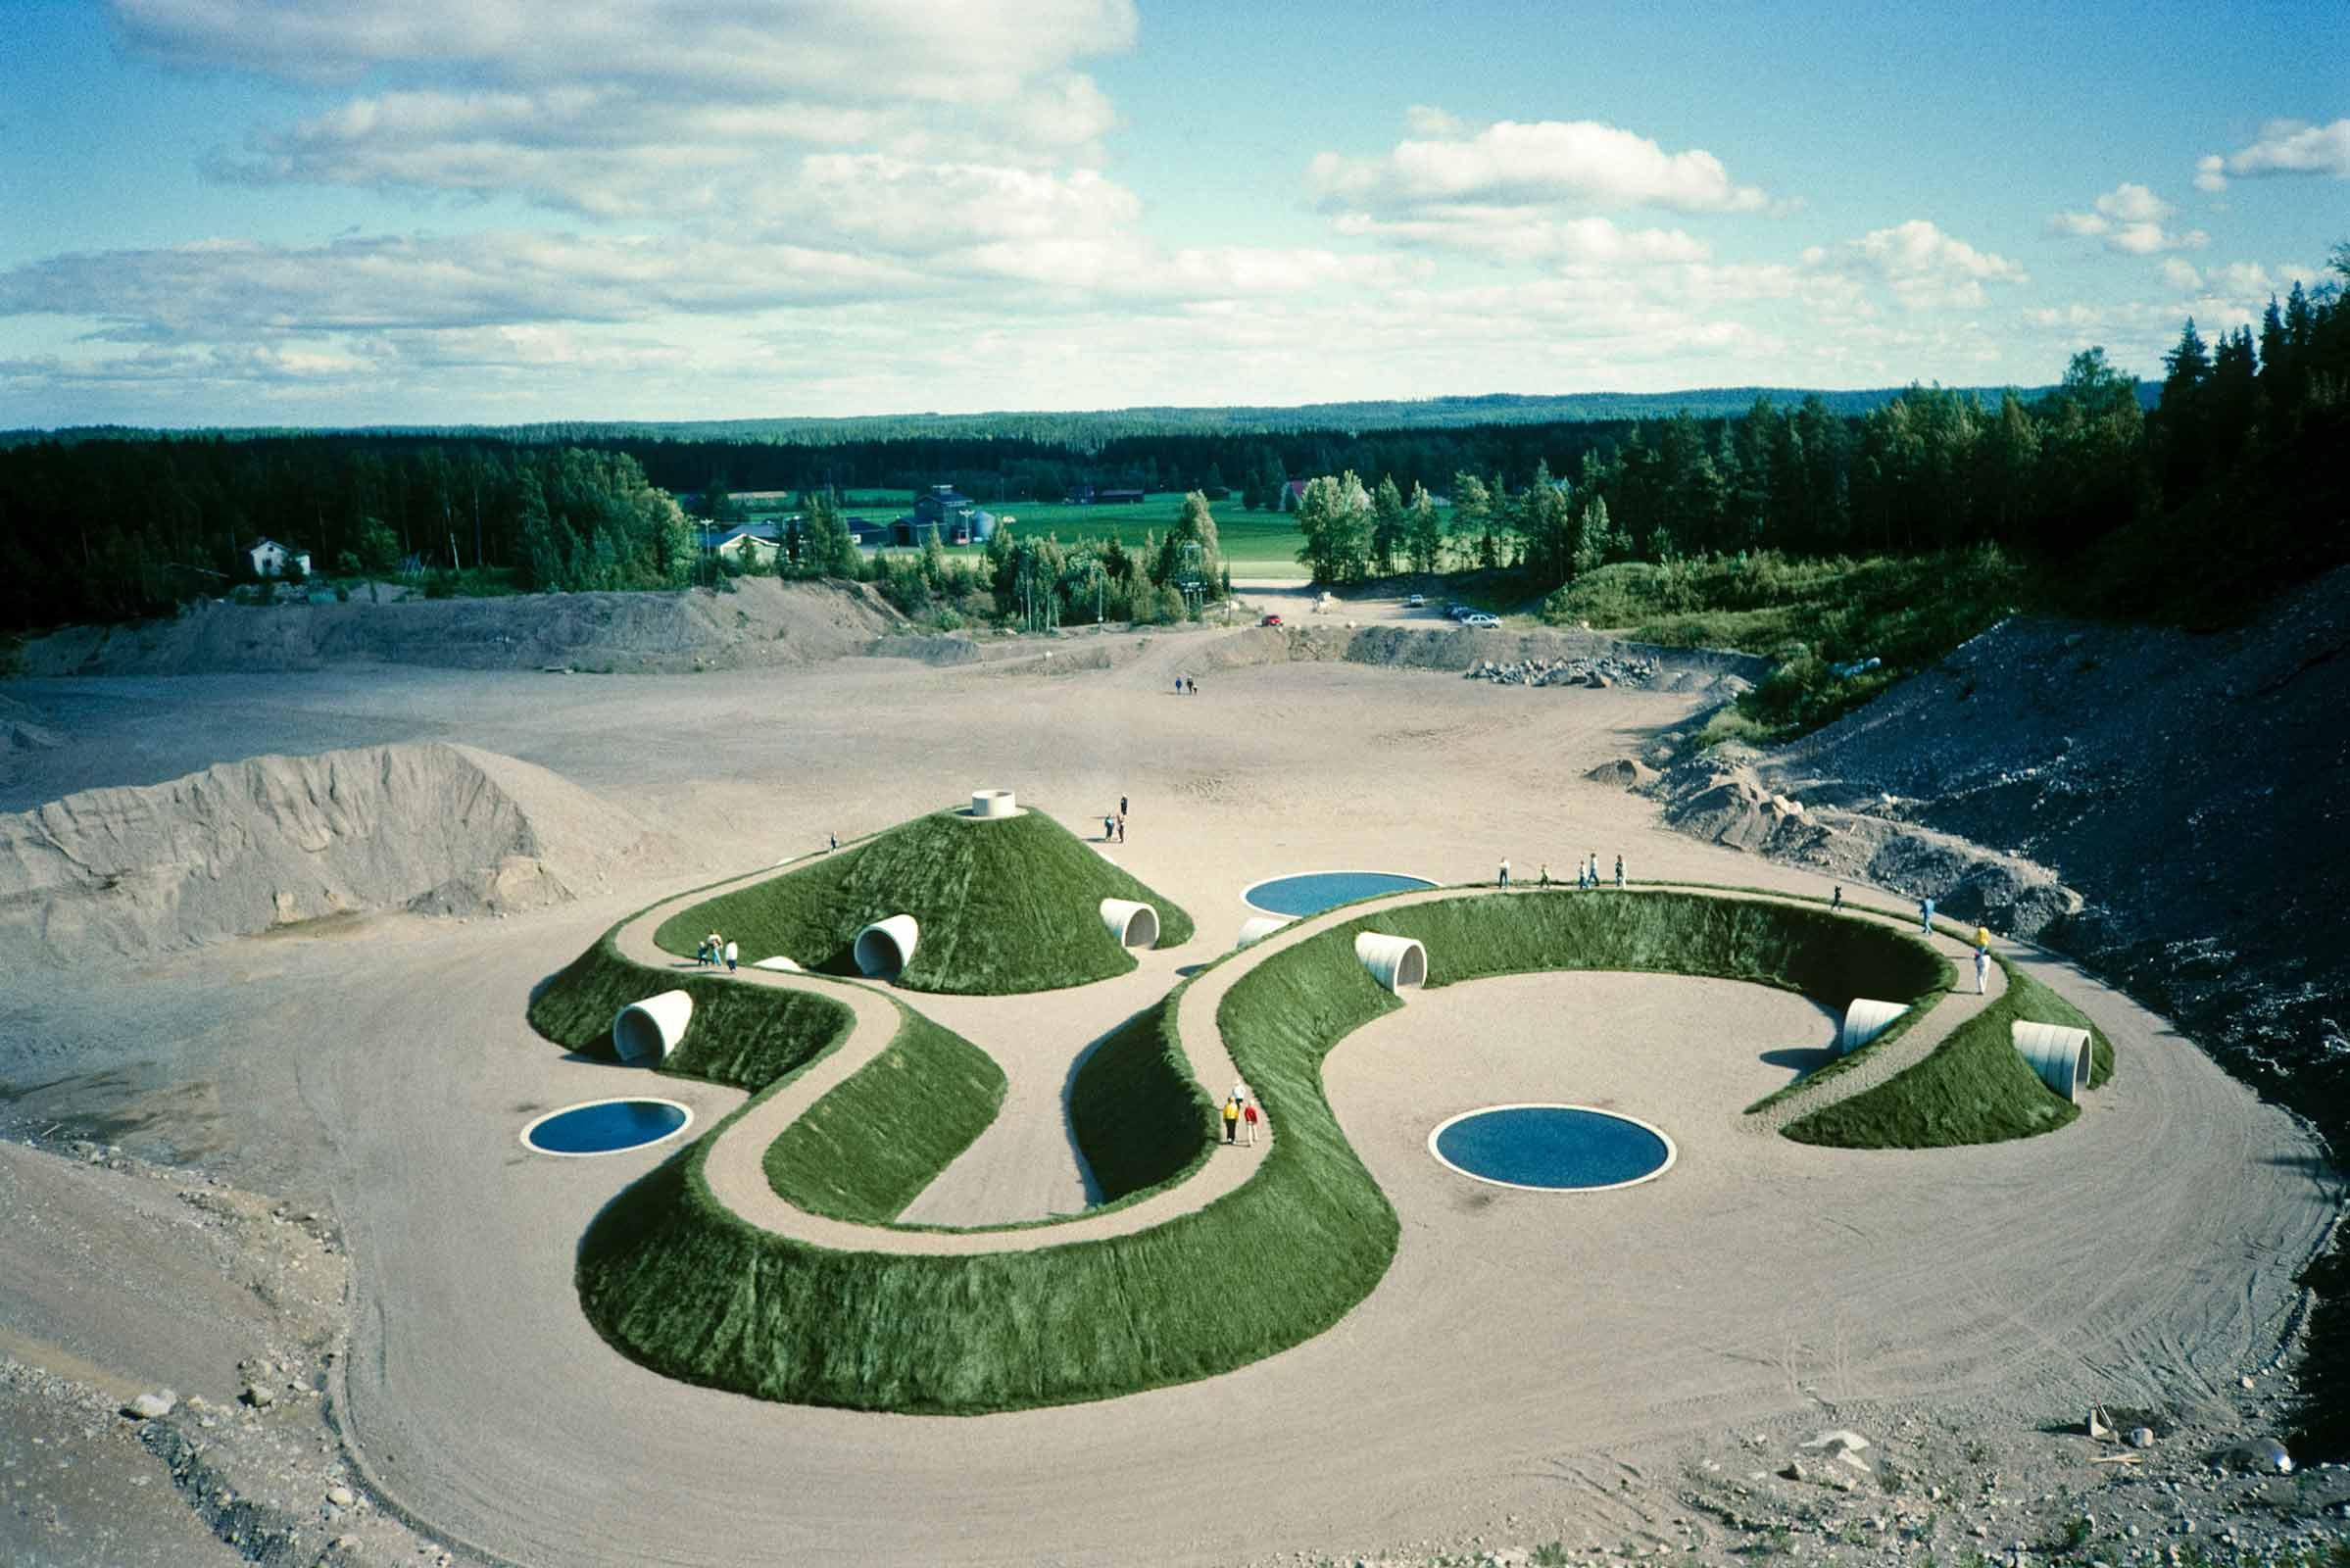 large earthwork sculpture made using earth, concrete, water, and grass with people moving around on top of it.